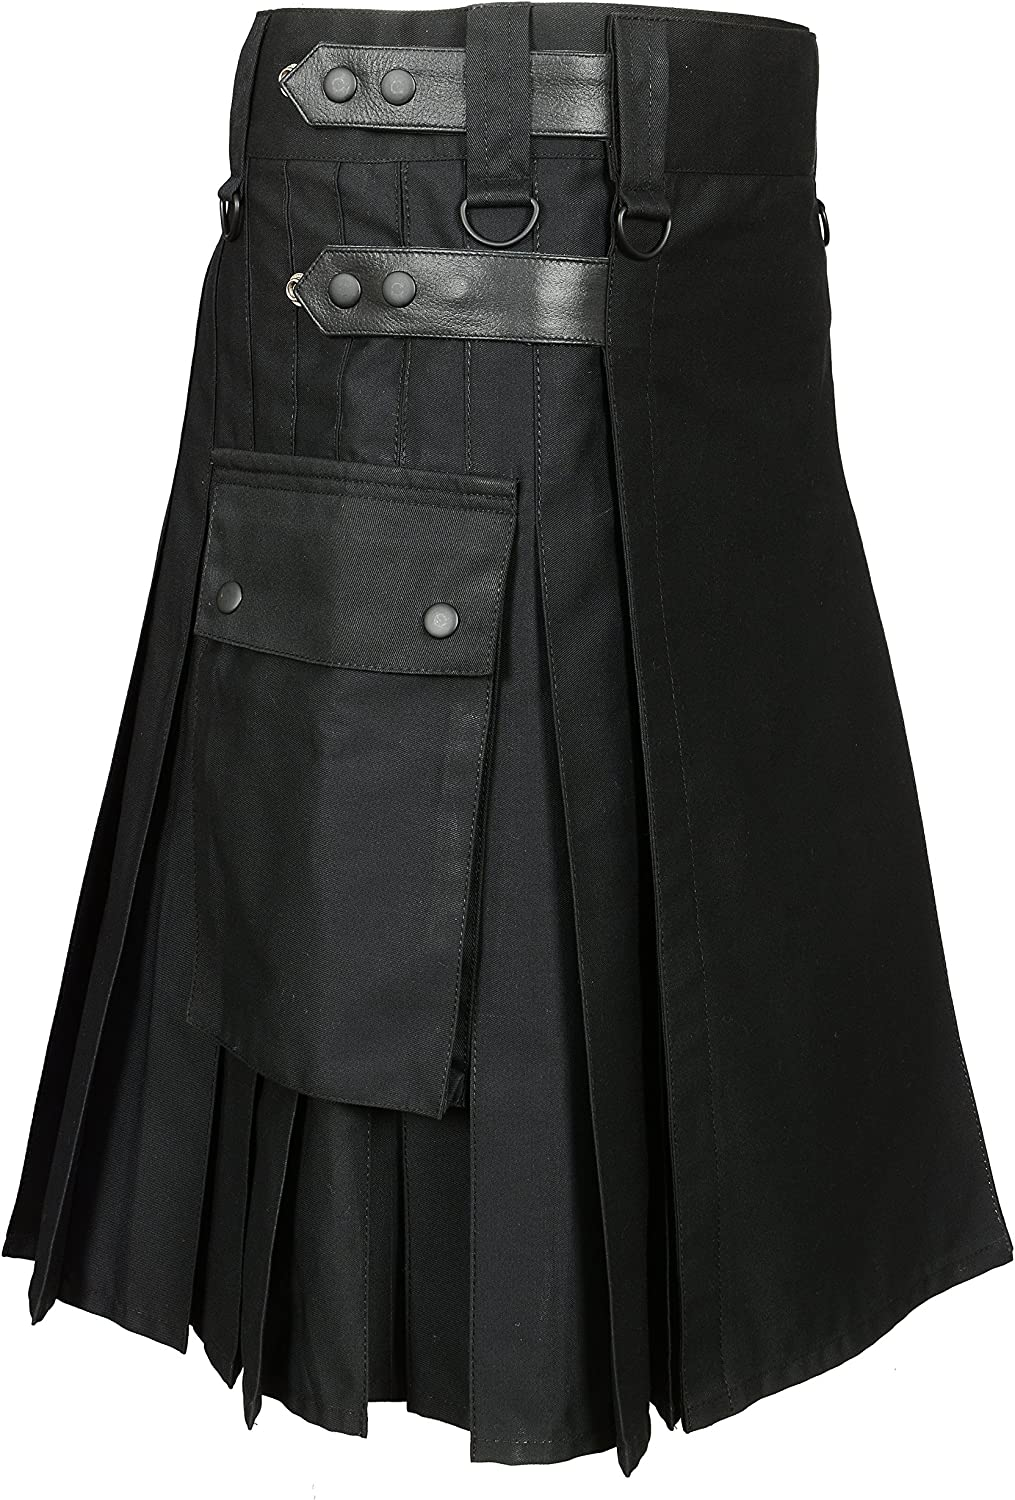 Men 's Black Utility Kilt